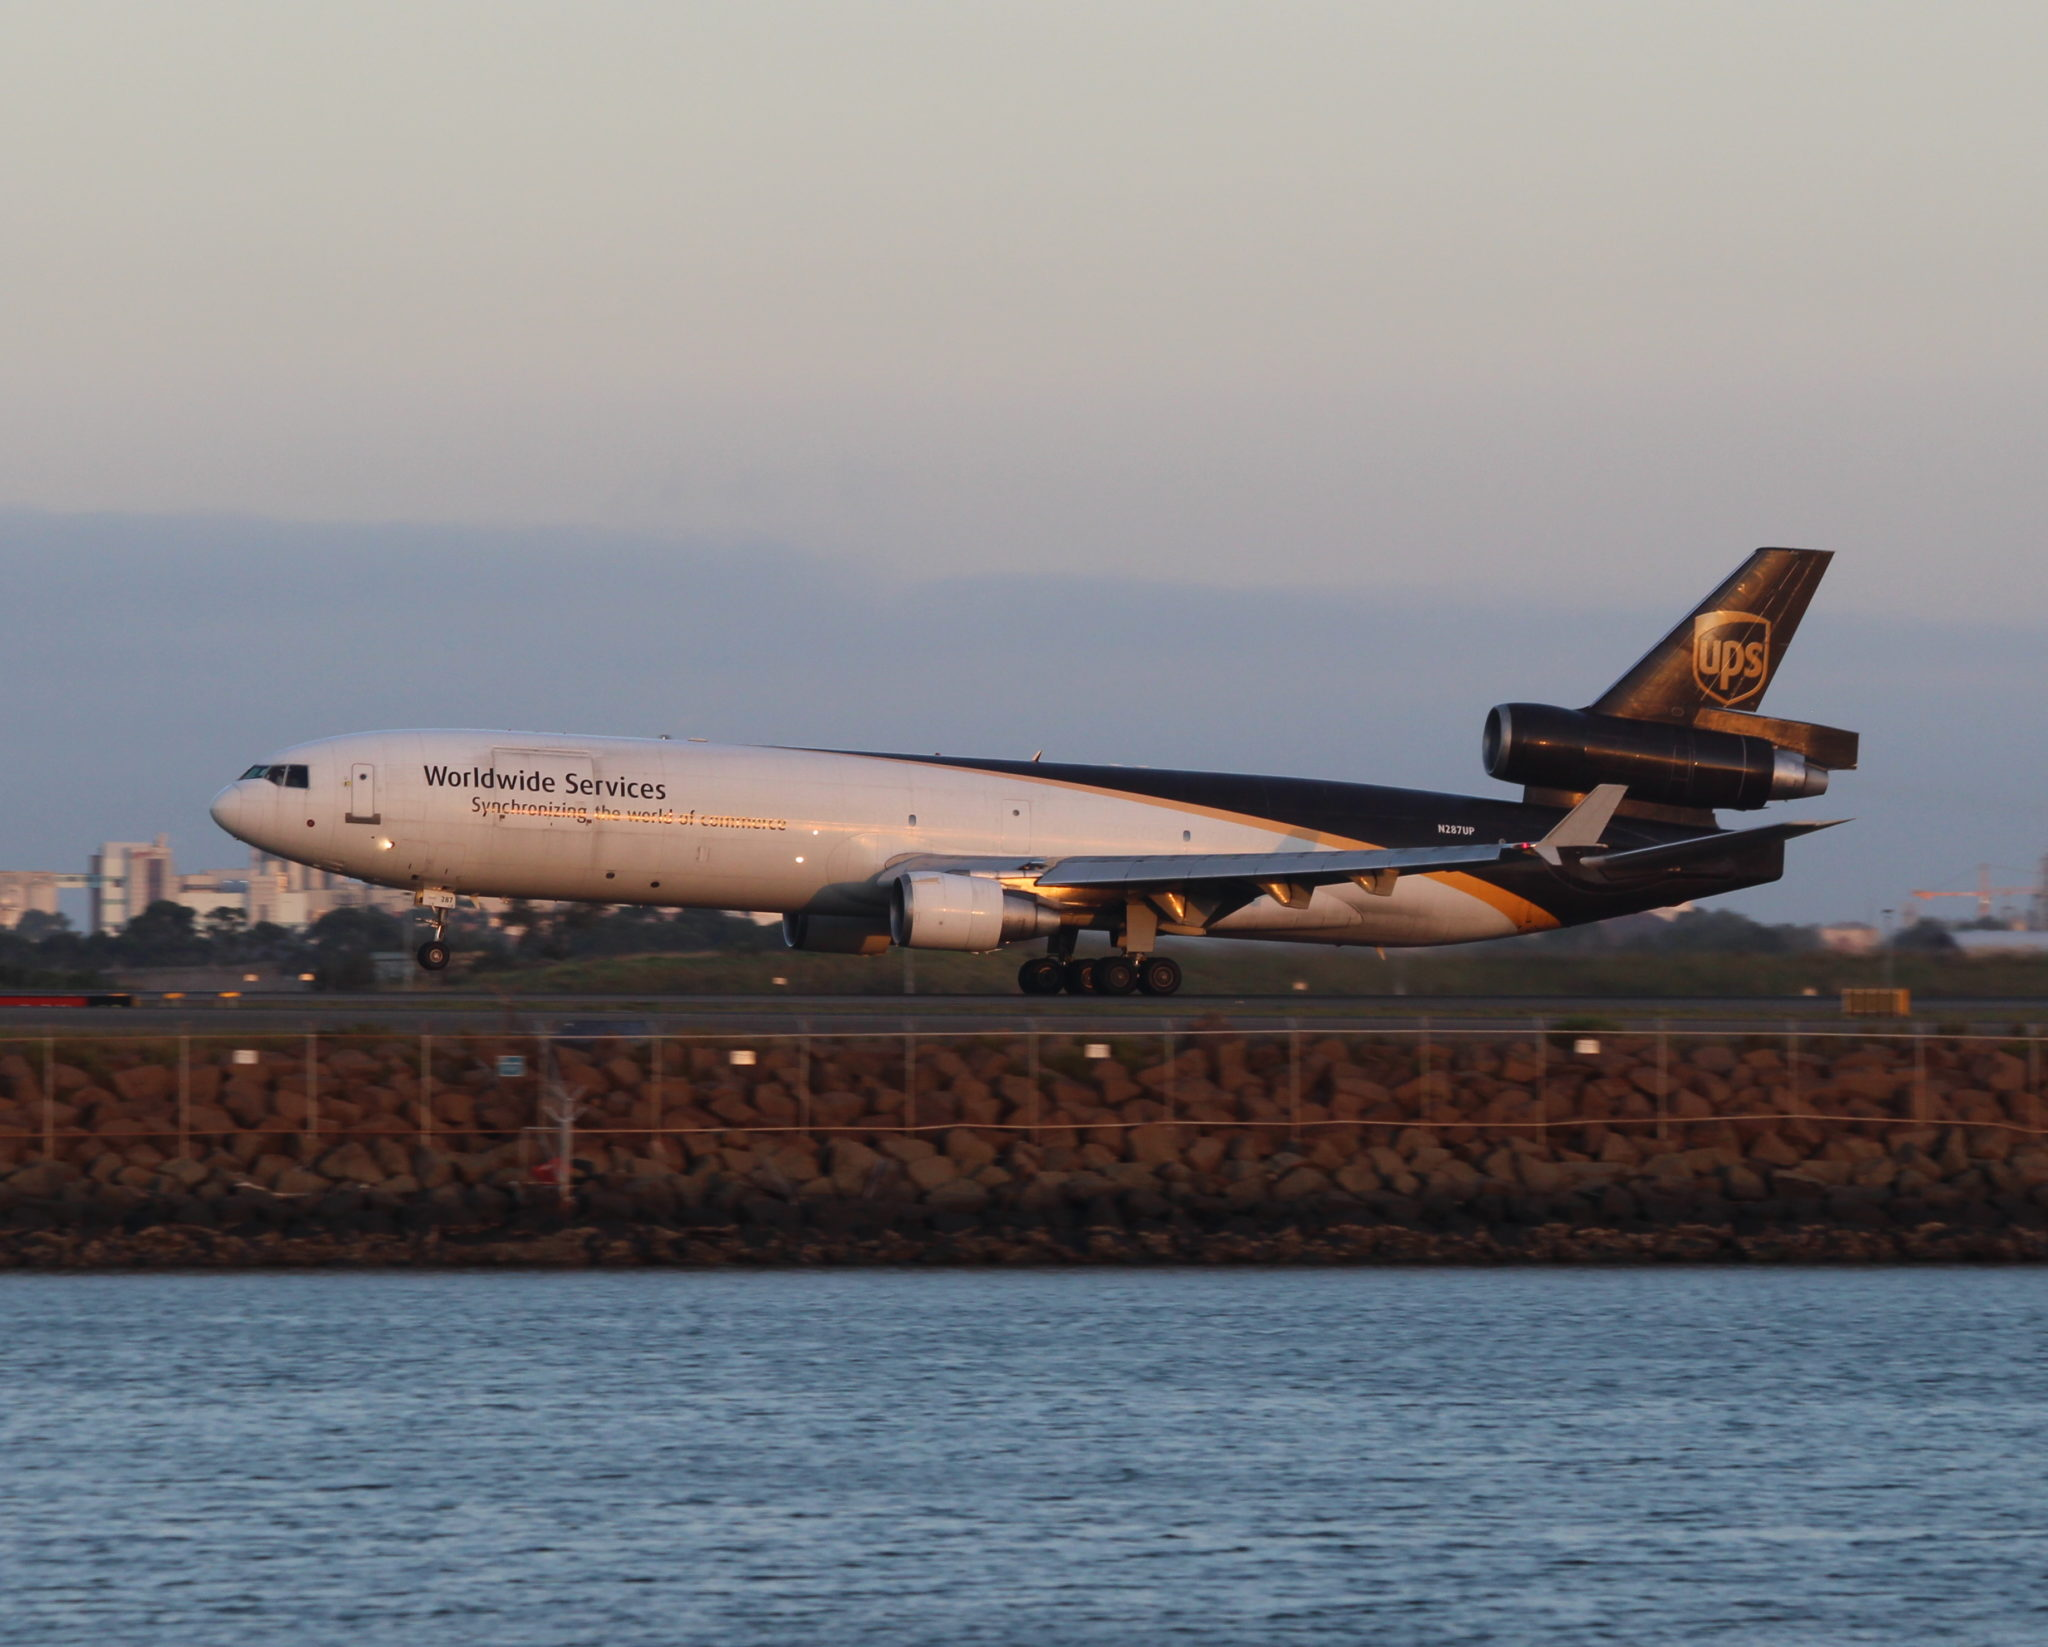 Lepley flies the professionally challenging MD-11 aircraft for a cargo airline. Image: John Walton